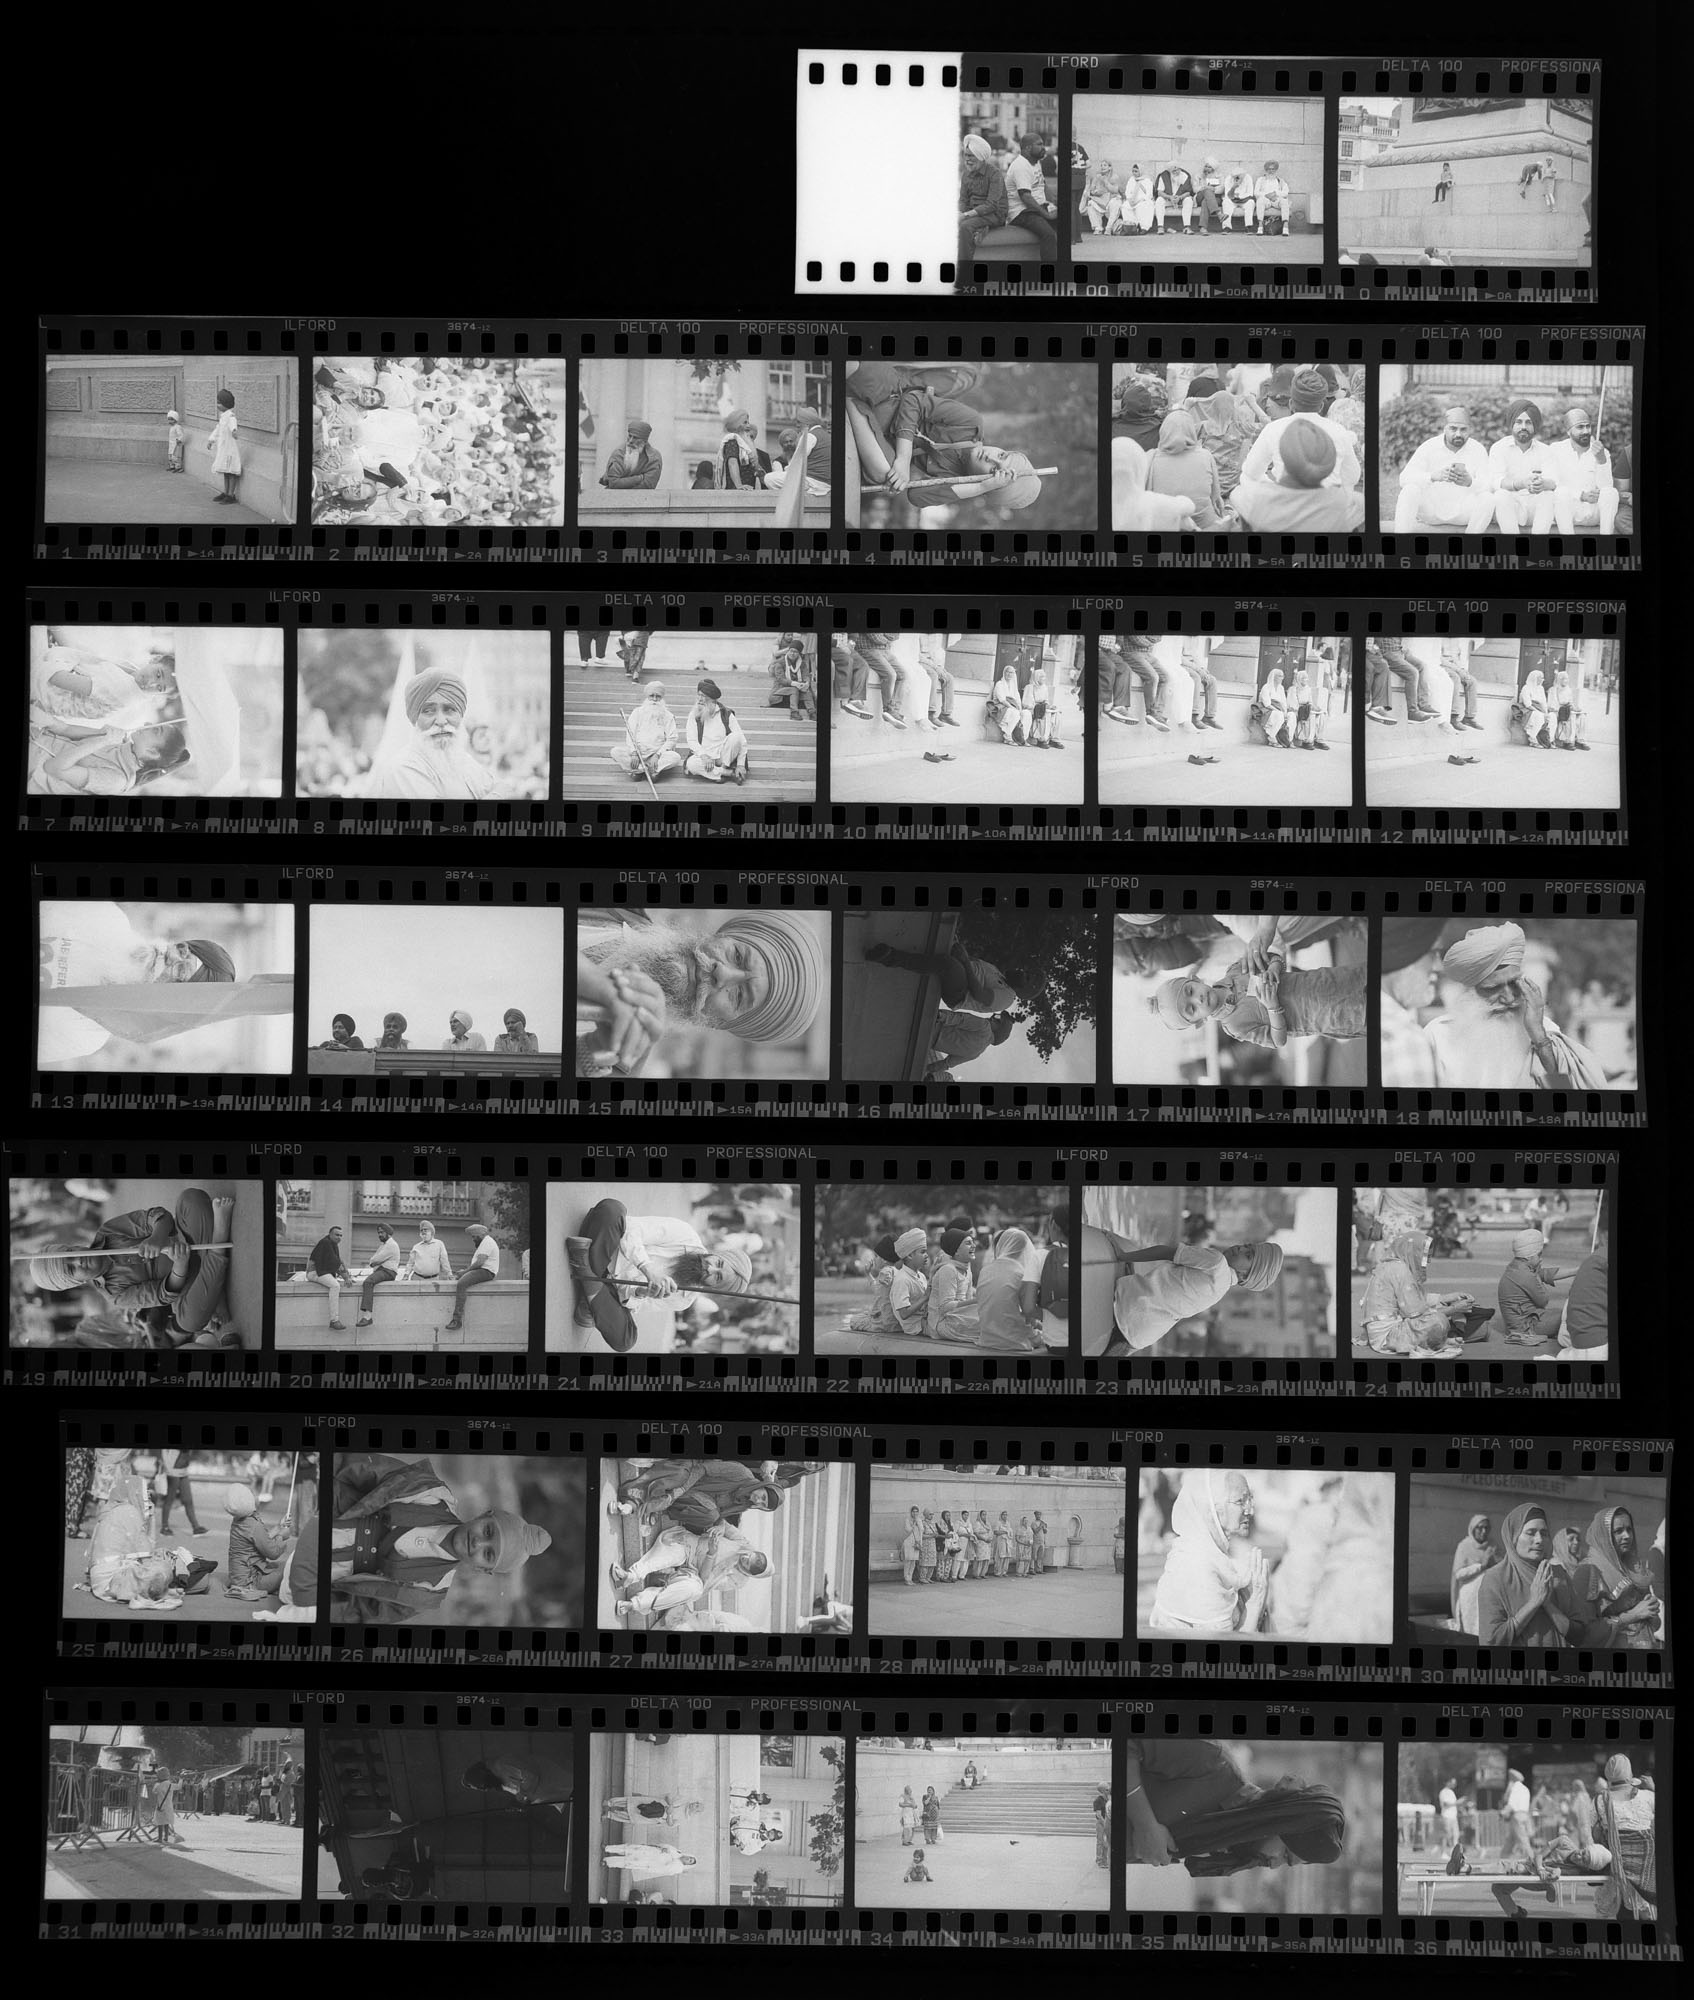 Using a contact sheet to actively curate an image